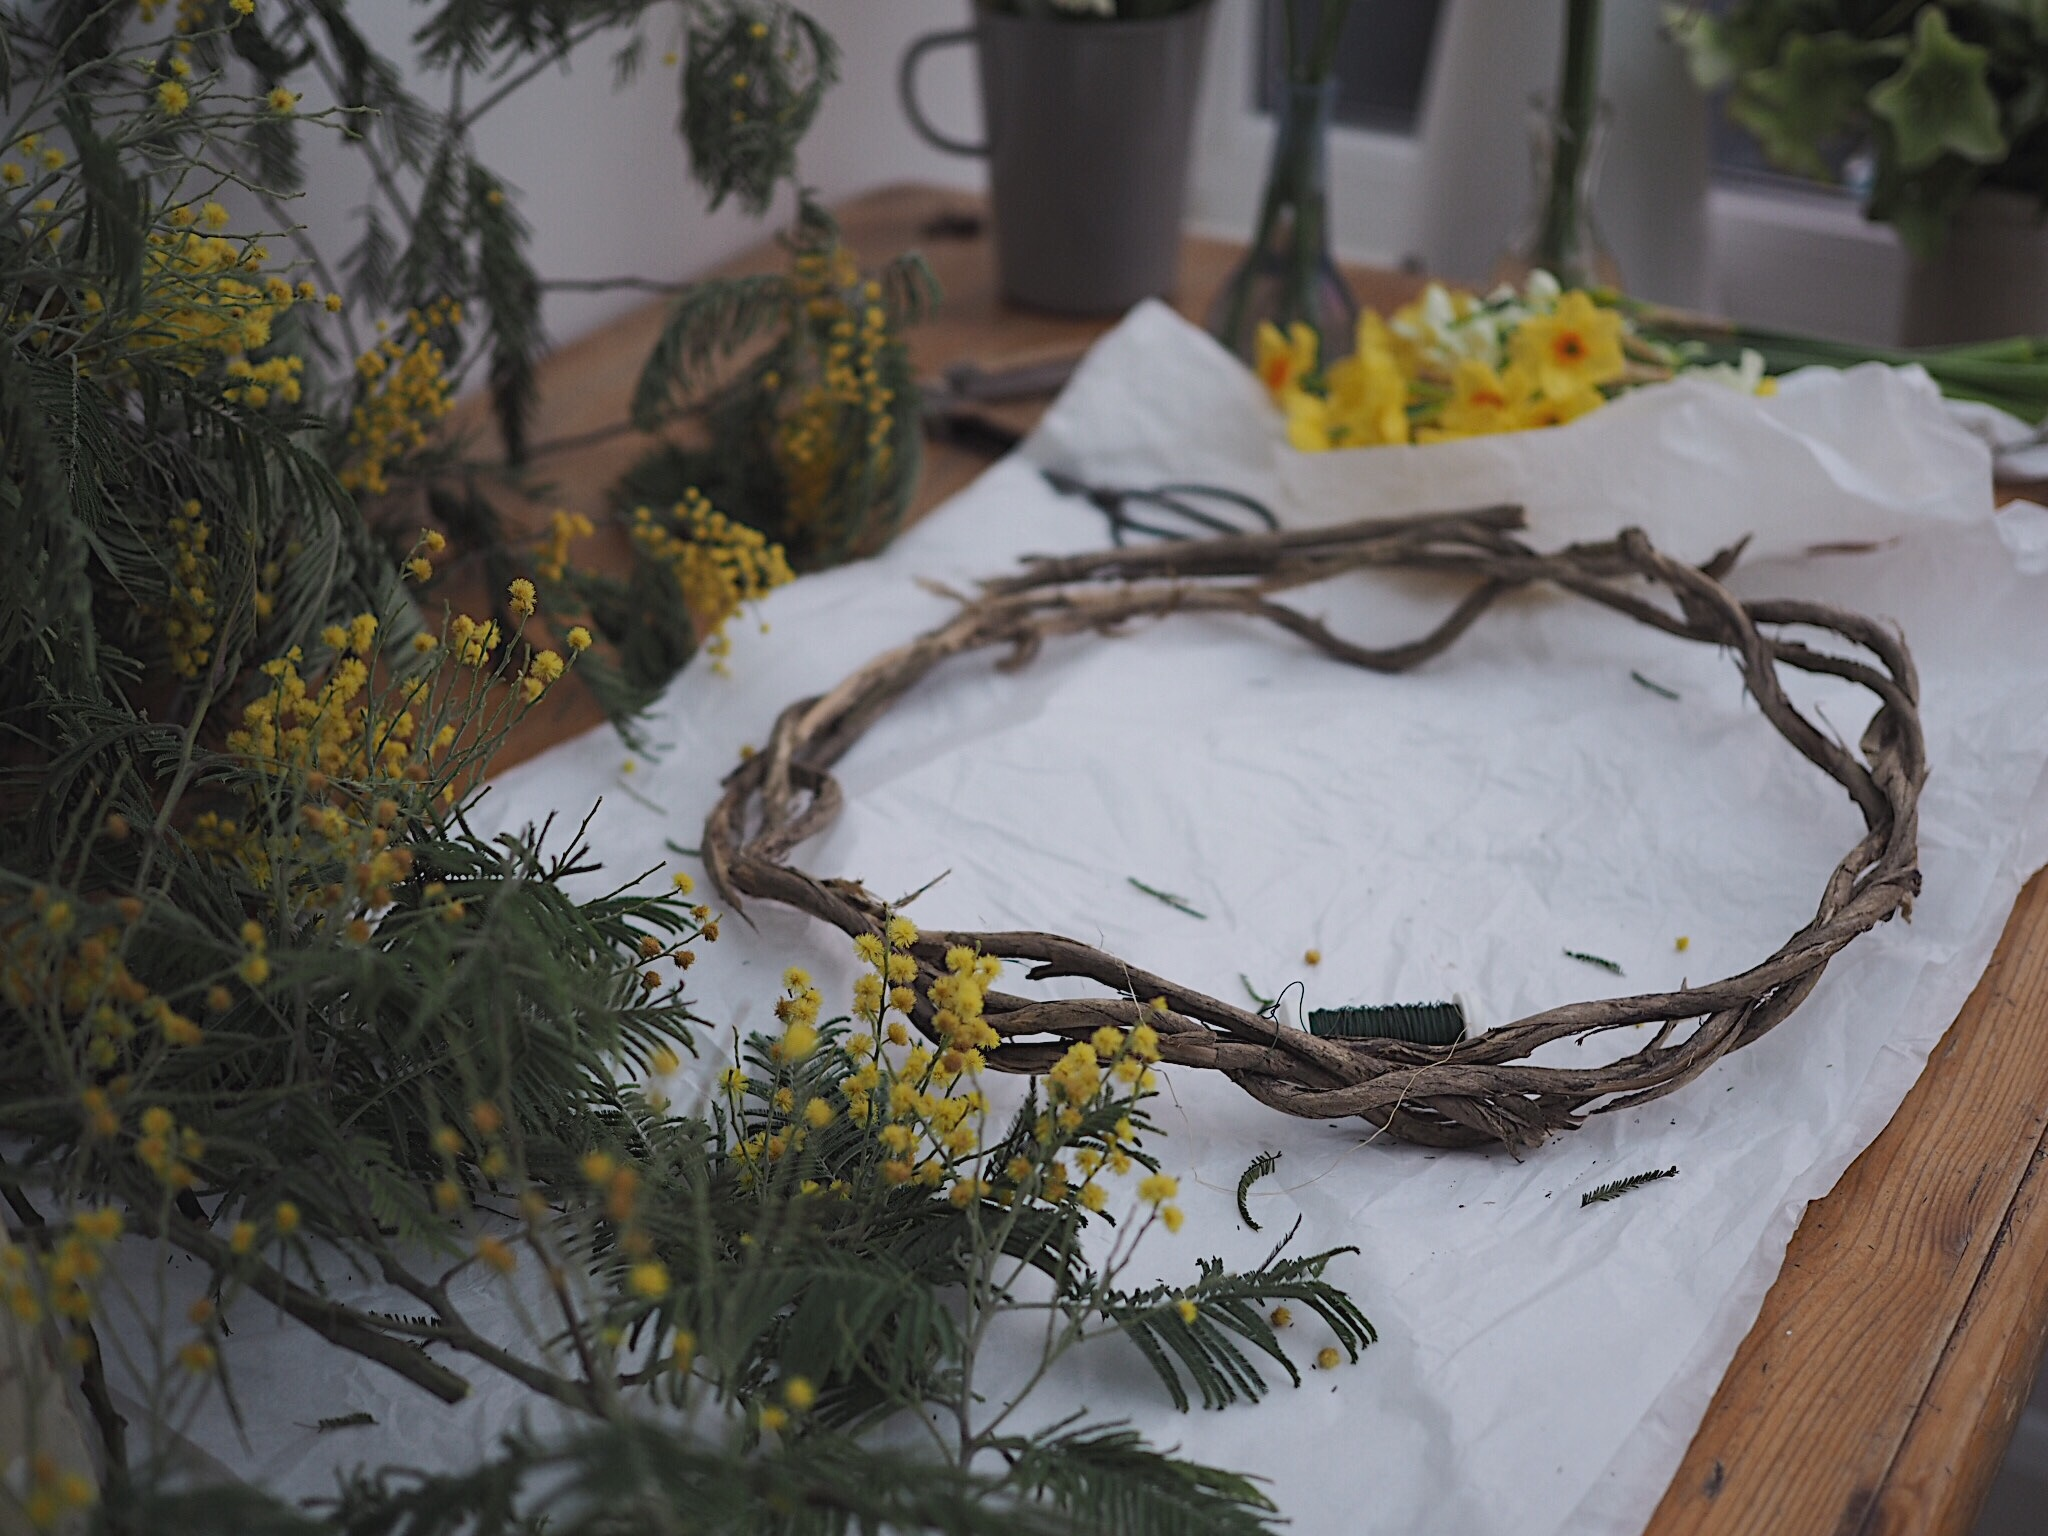 All you need for your DIY spring wreath